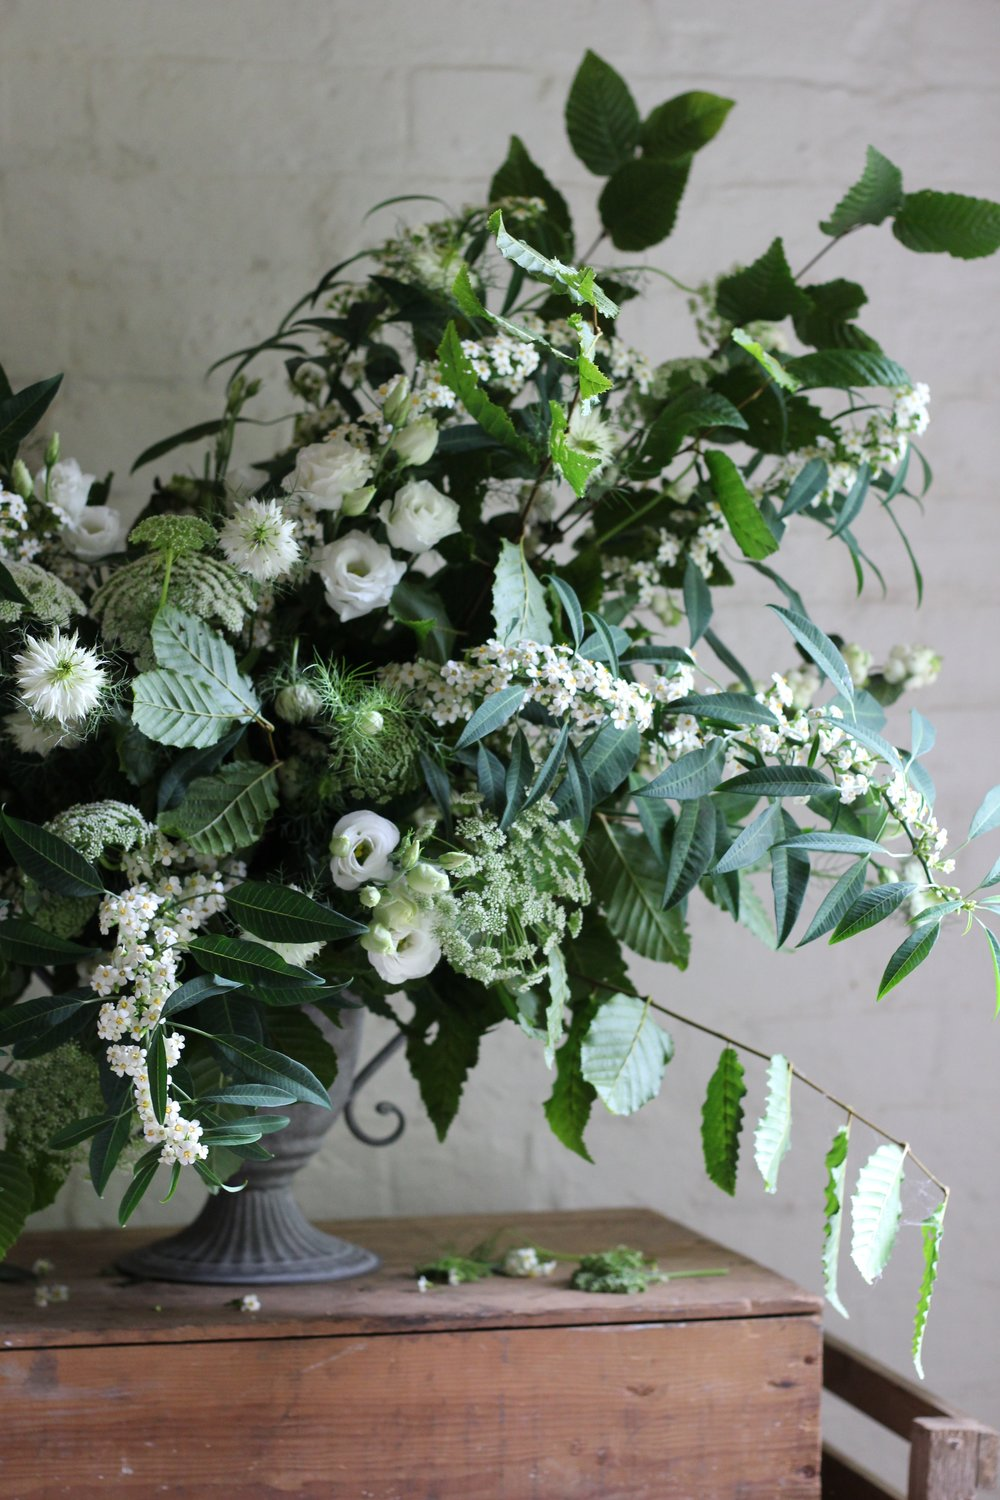 Jennifer Pinder Kent London florist flowers does a botanical themed green and white wedding at Jamies italain restaurant in London threadneedle street_1027.jpg